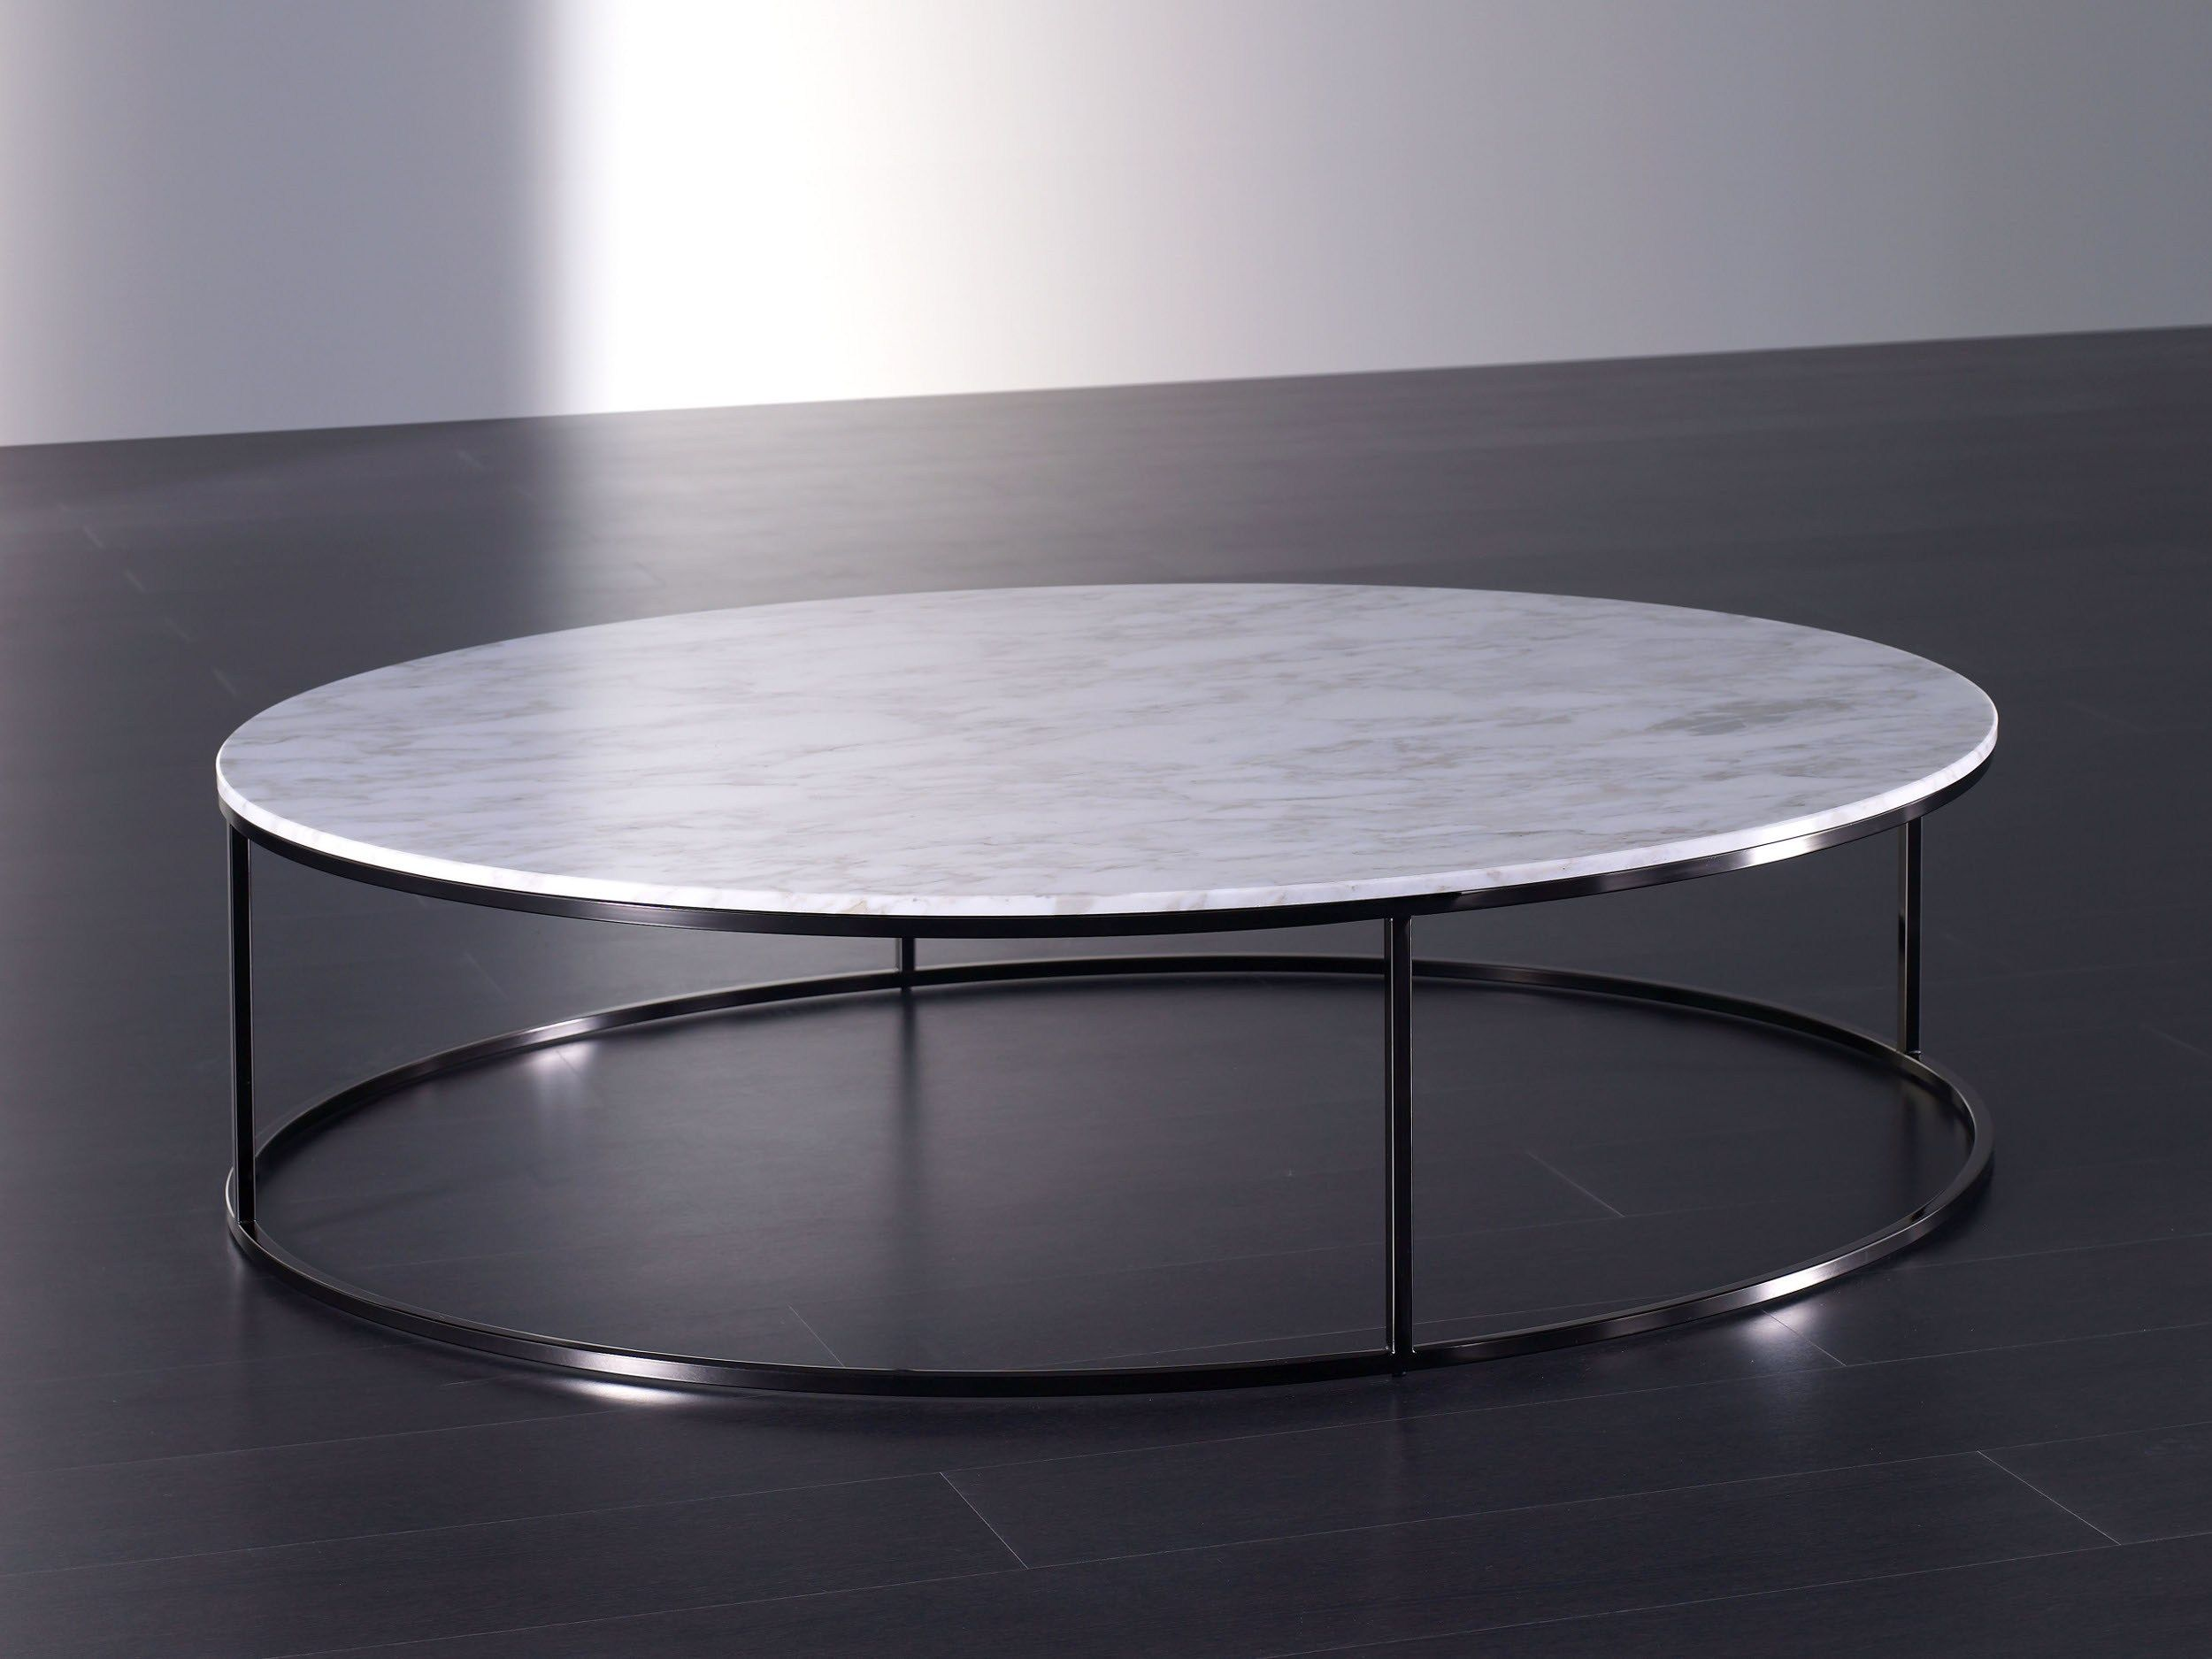 Marvelous Tropical Round Marble Coffee Tables For Sale And Round Coffee Table With  Marble Top